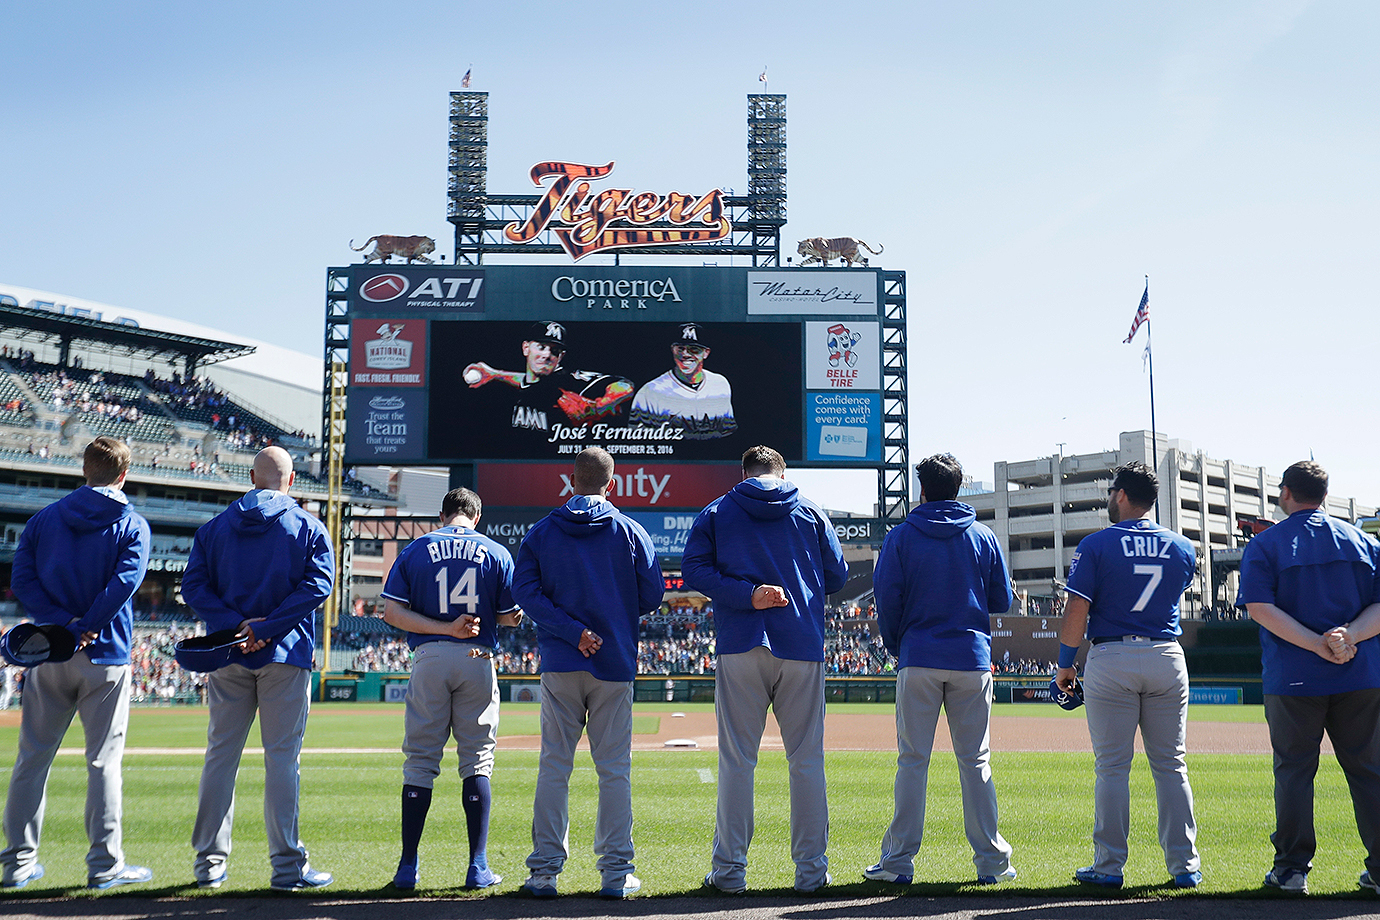 Members of the Royals stand during a moment of silence for Jose Fernandez before Sunday's game against the Tigers.